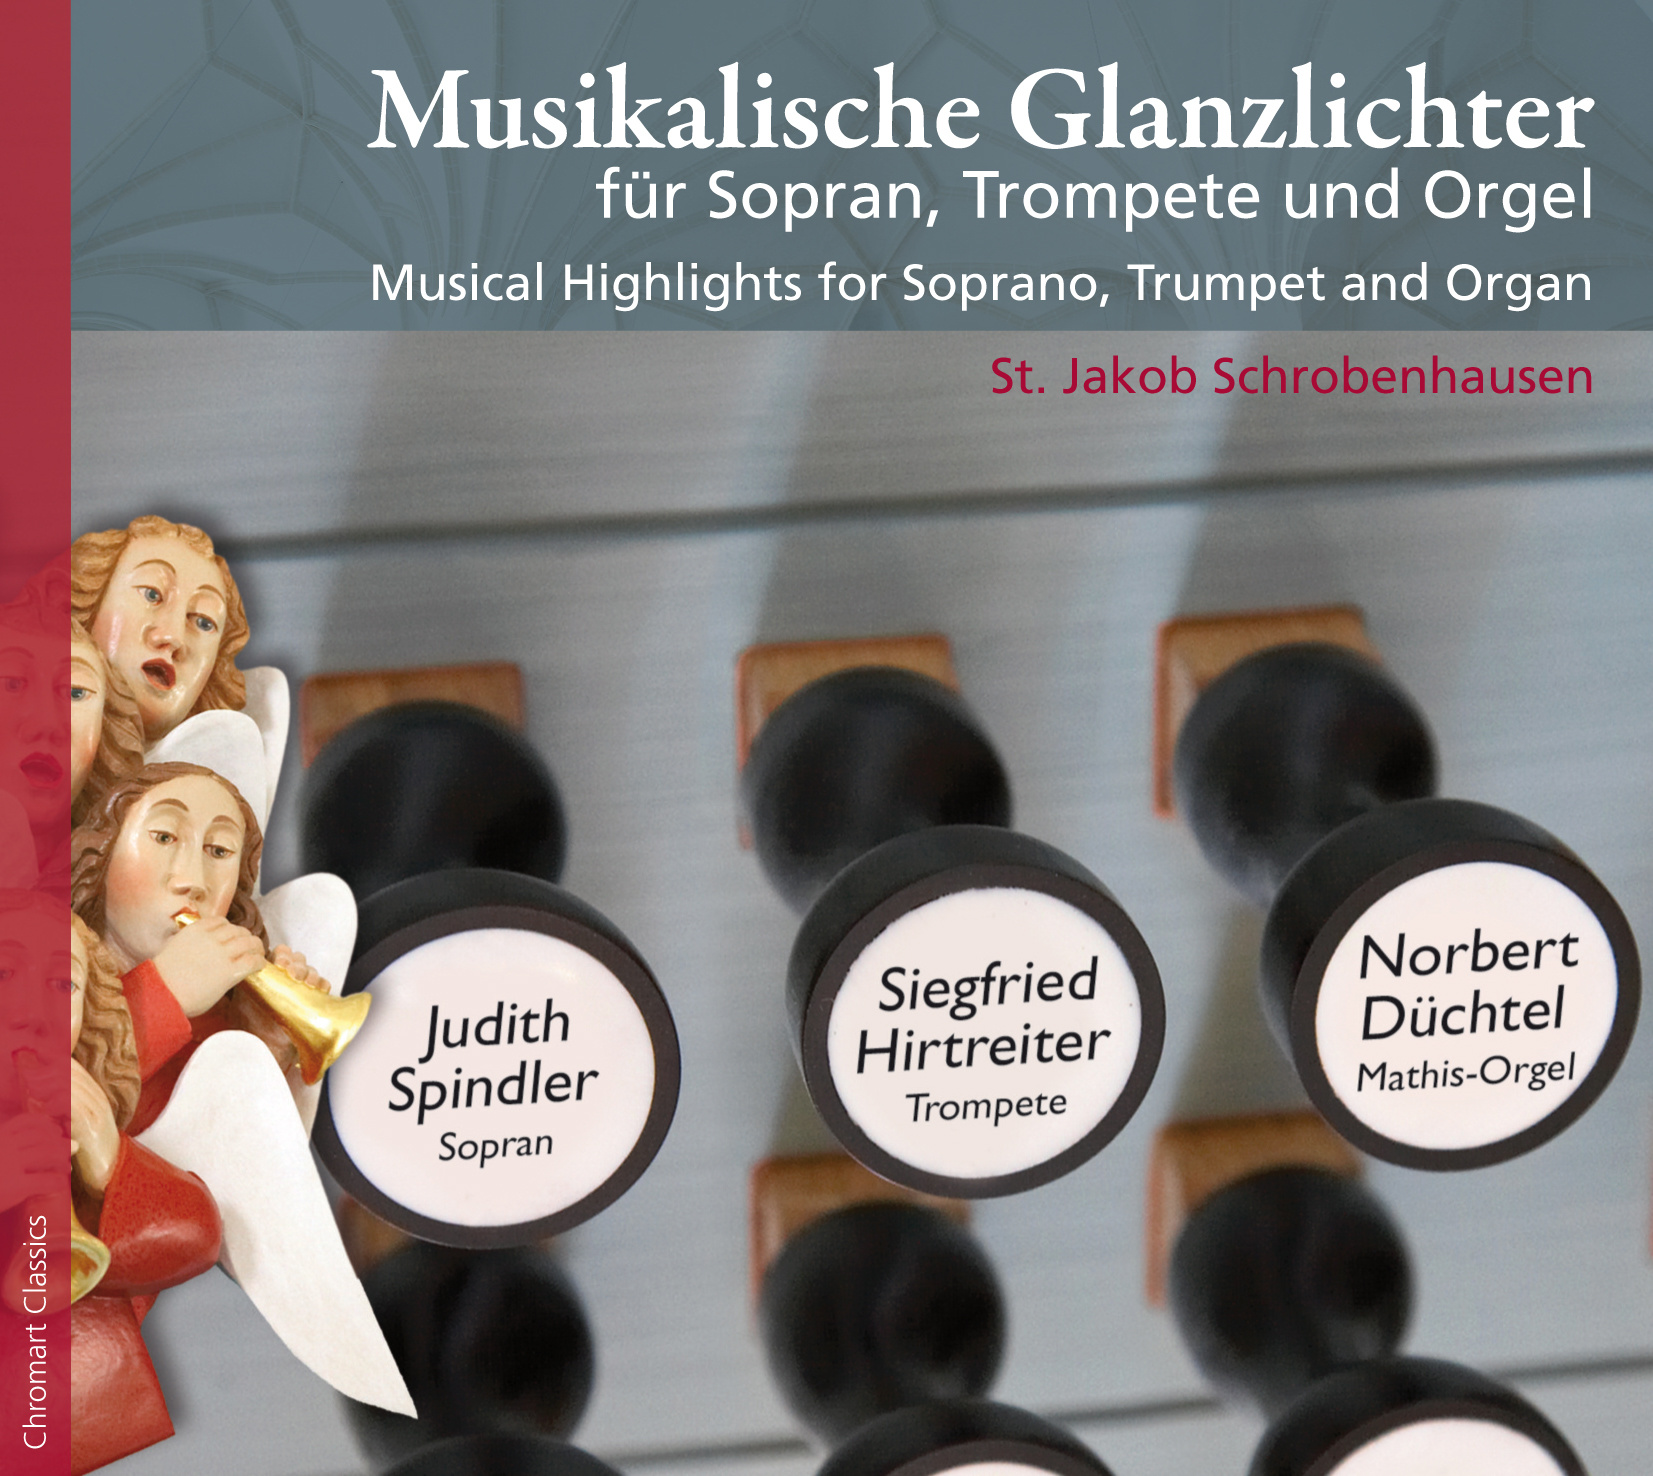 Musical Highlights for Soprano, Trumpet and Organ